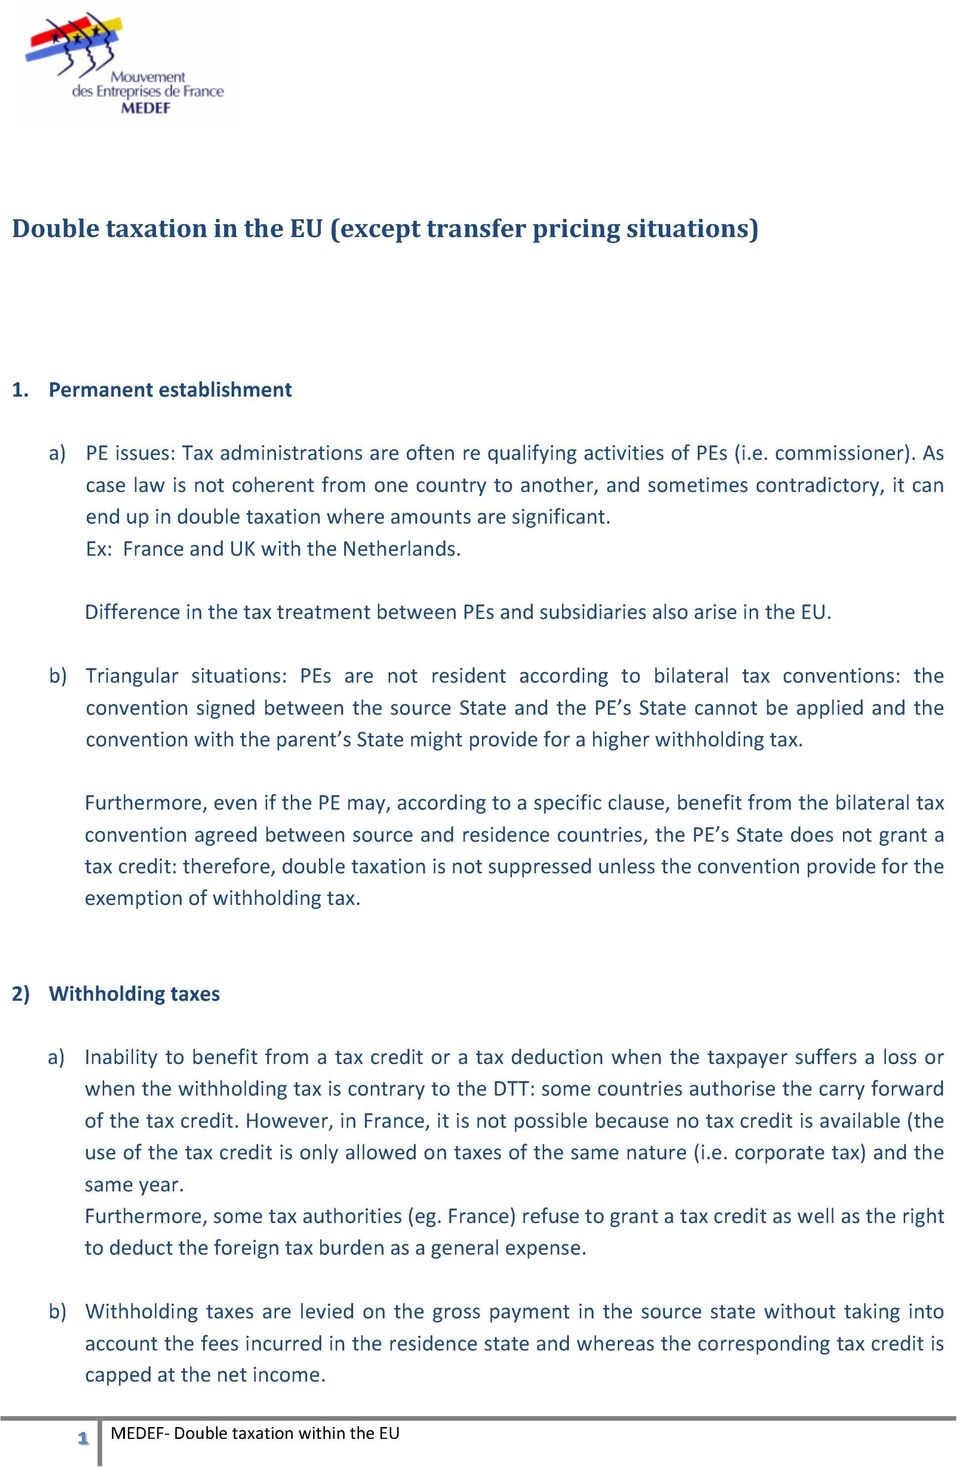 Difference in the tax treatment between PEs and subsidiaries also arise in the EU.